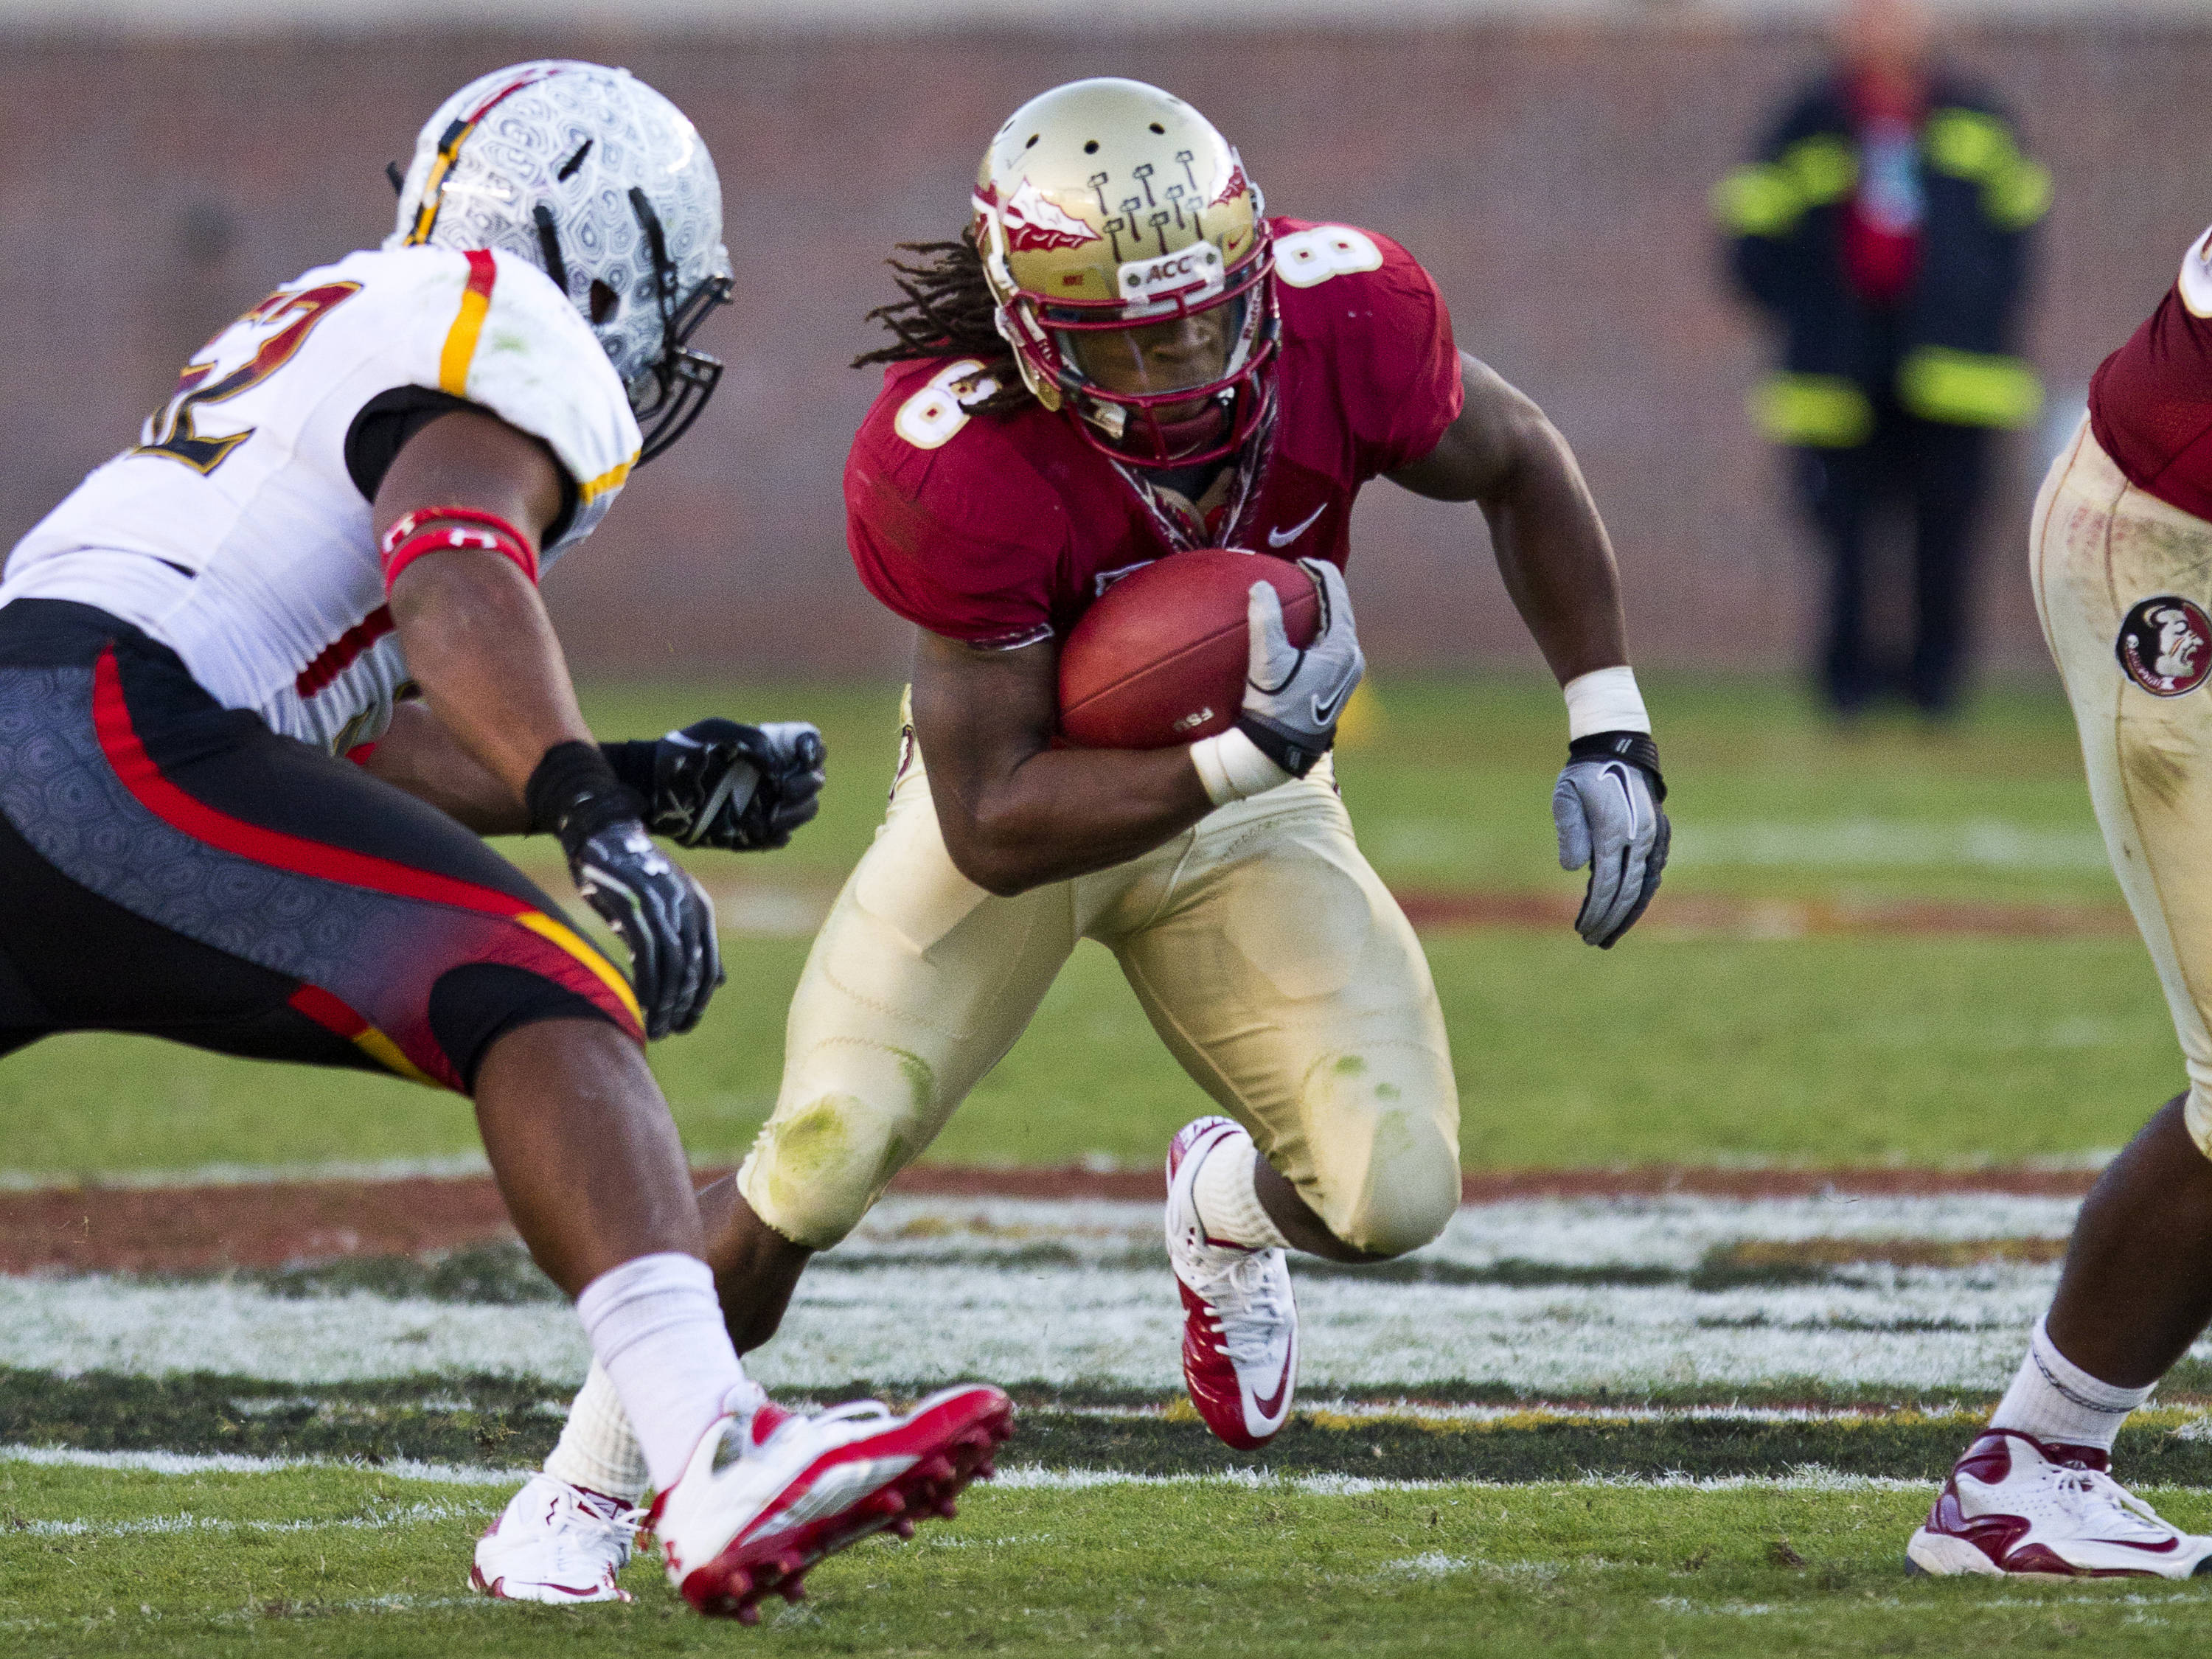 Devonta Freeman (8) carries the ball past a Maryland defender during the football game against Maryland in Tallahassee, Florida on October 22, 2011.